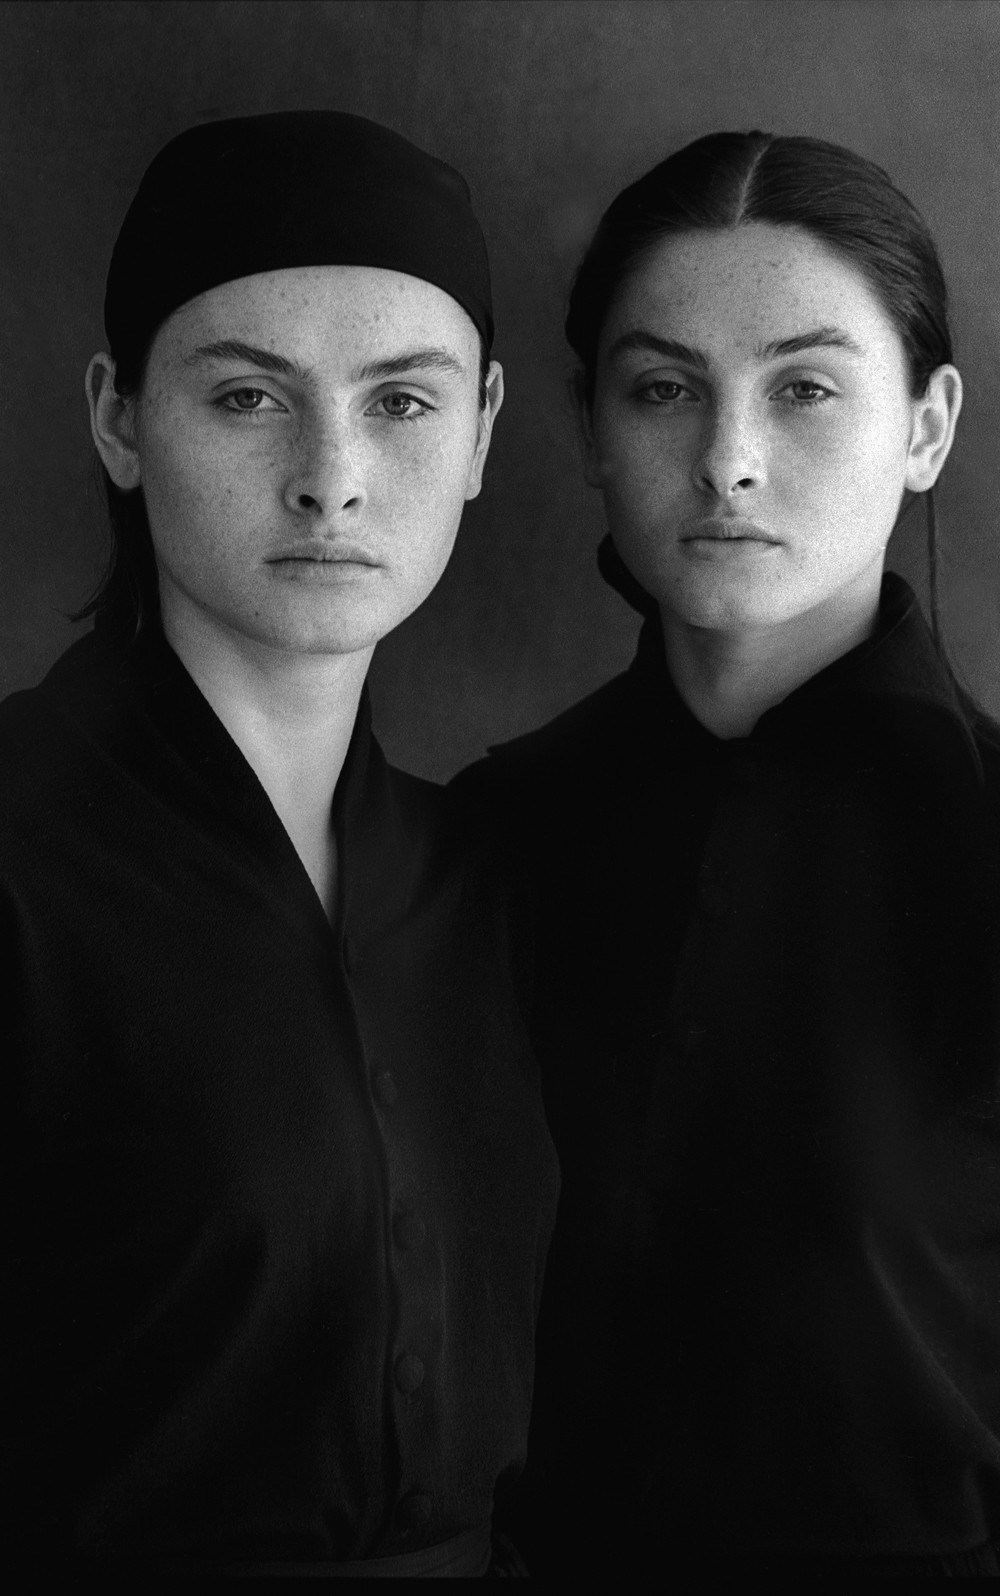 Twins, NYC This is from a series on siblings and twins I did in New York some years ago, for an Italian magazine. It is typical of my preferred use of daylight for nearly all my photographs, and even filming.